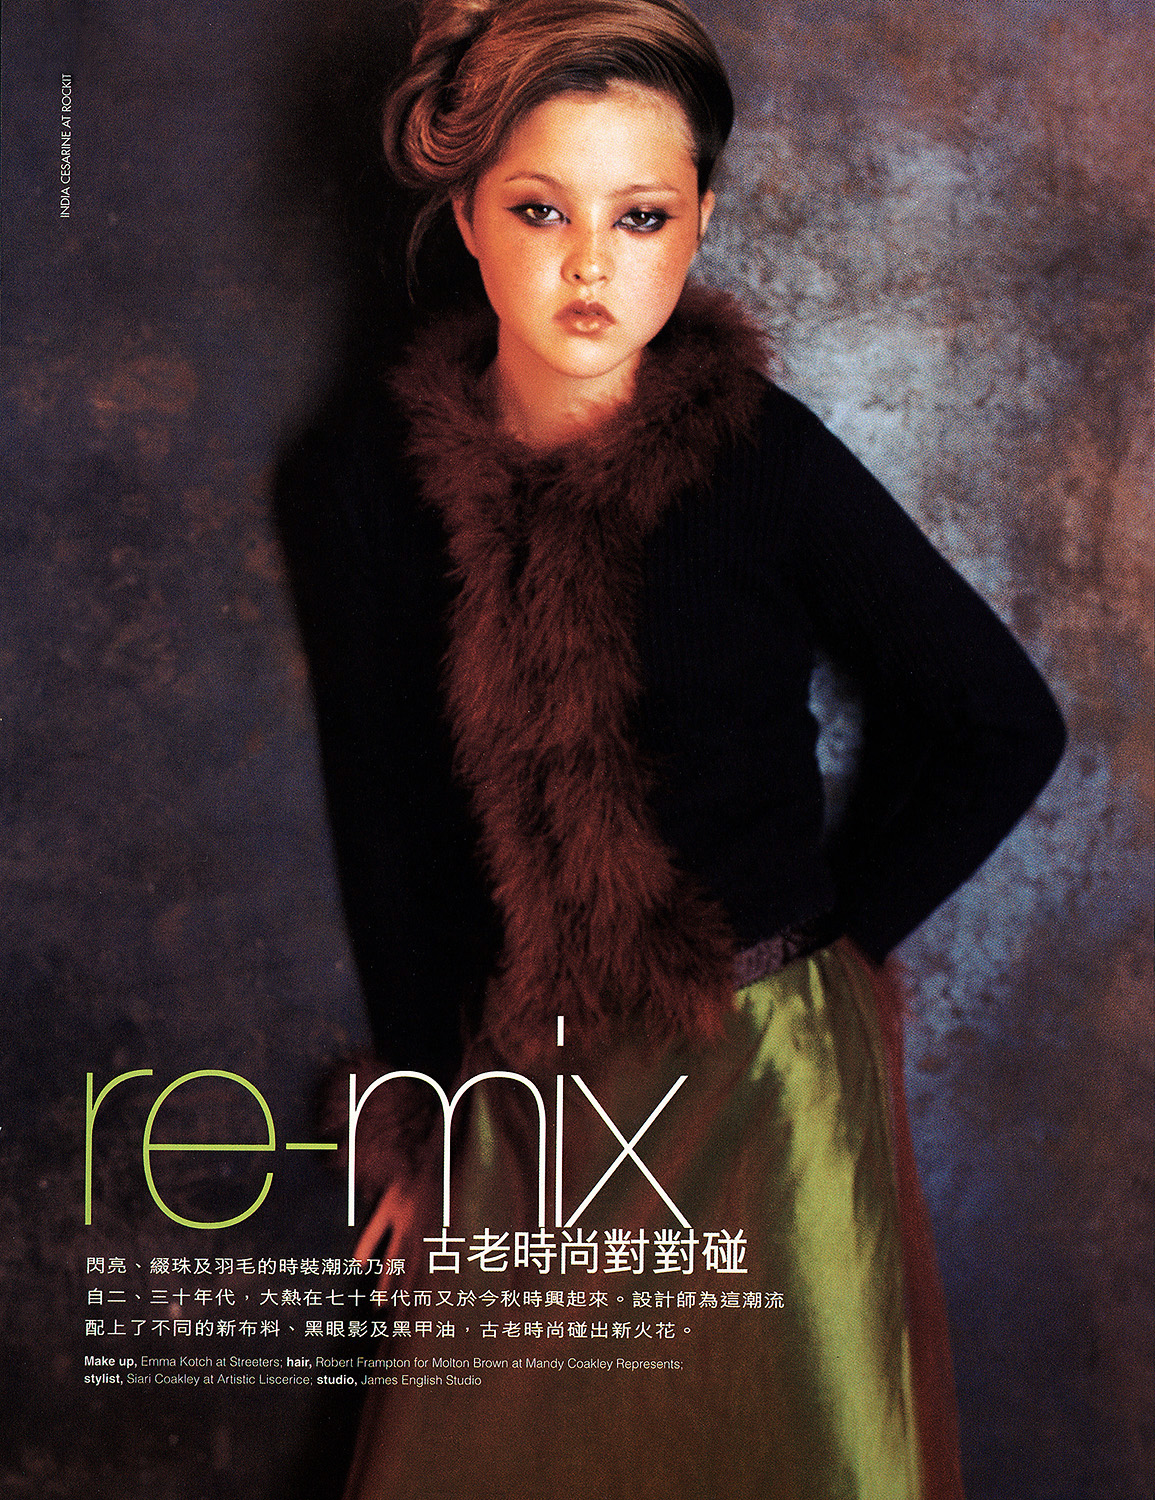 DEVON-AOKI-Photography-by-Indira-Cesarine-007x.jpg